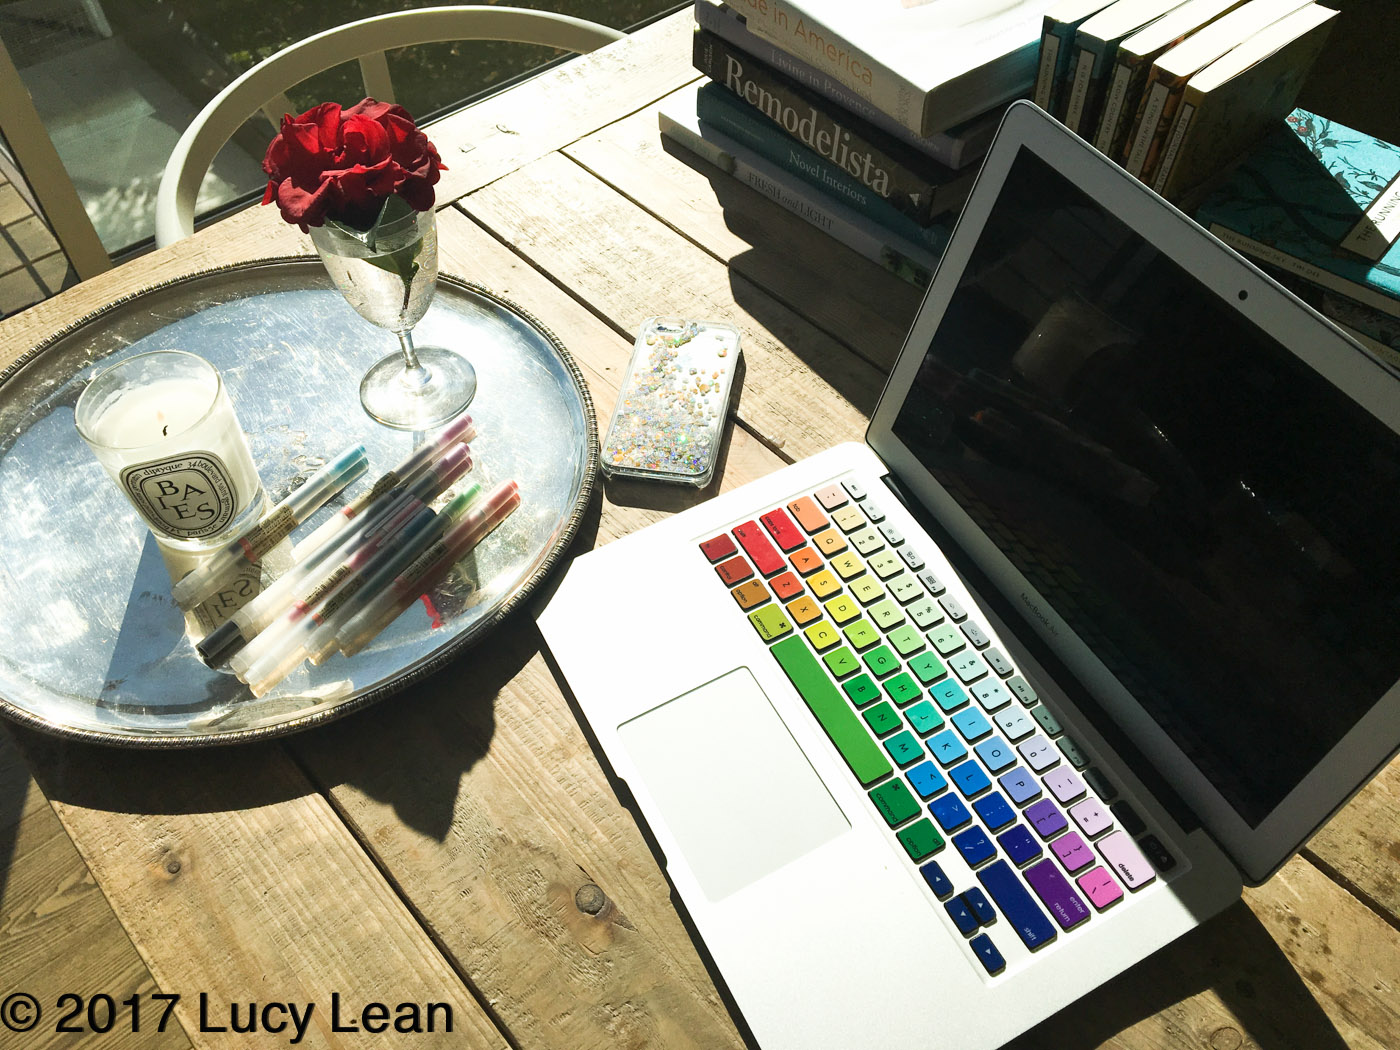 Lean Luxury to Brighten your Desk in 2017